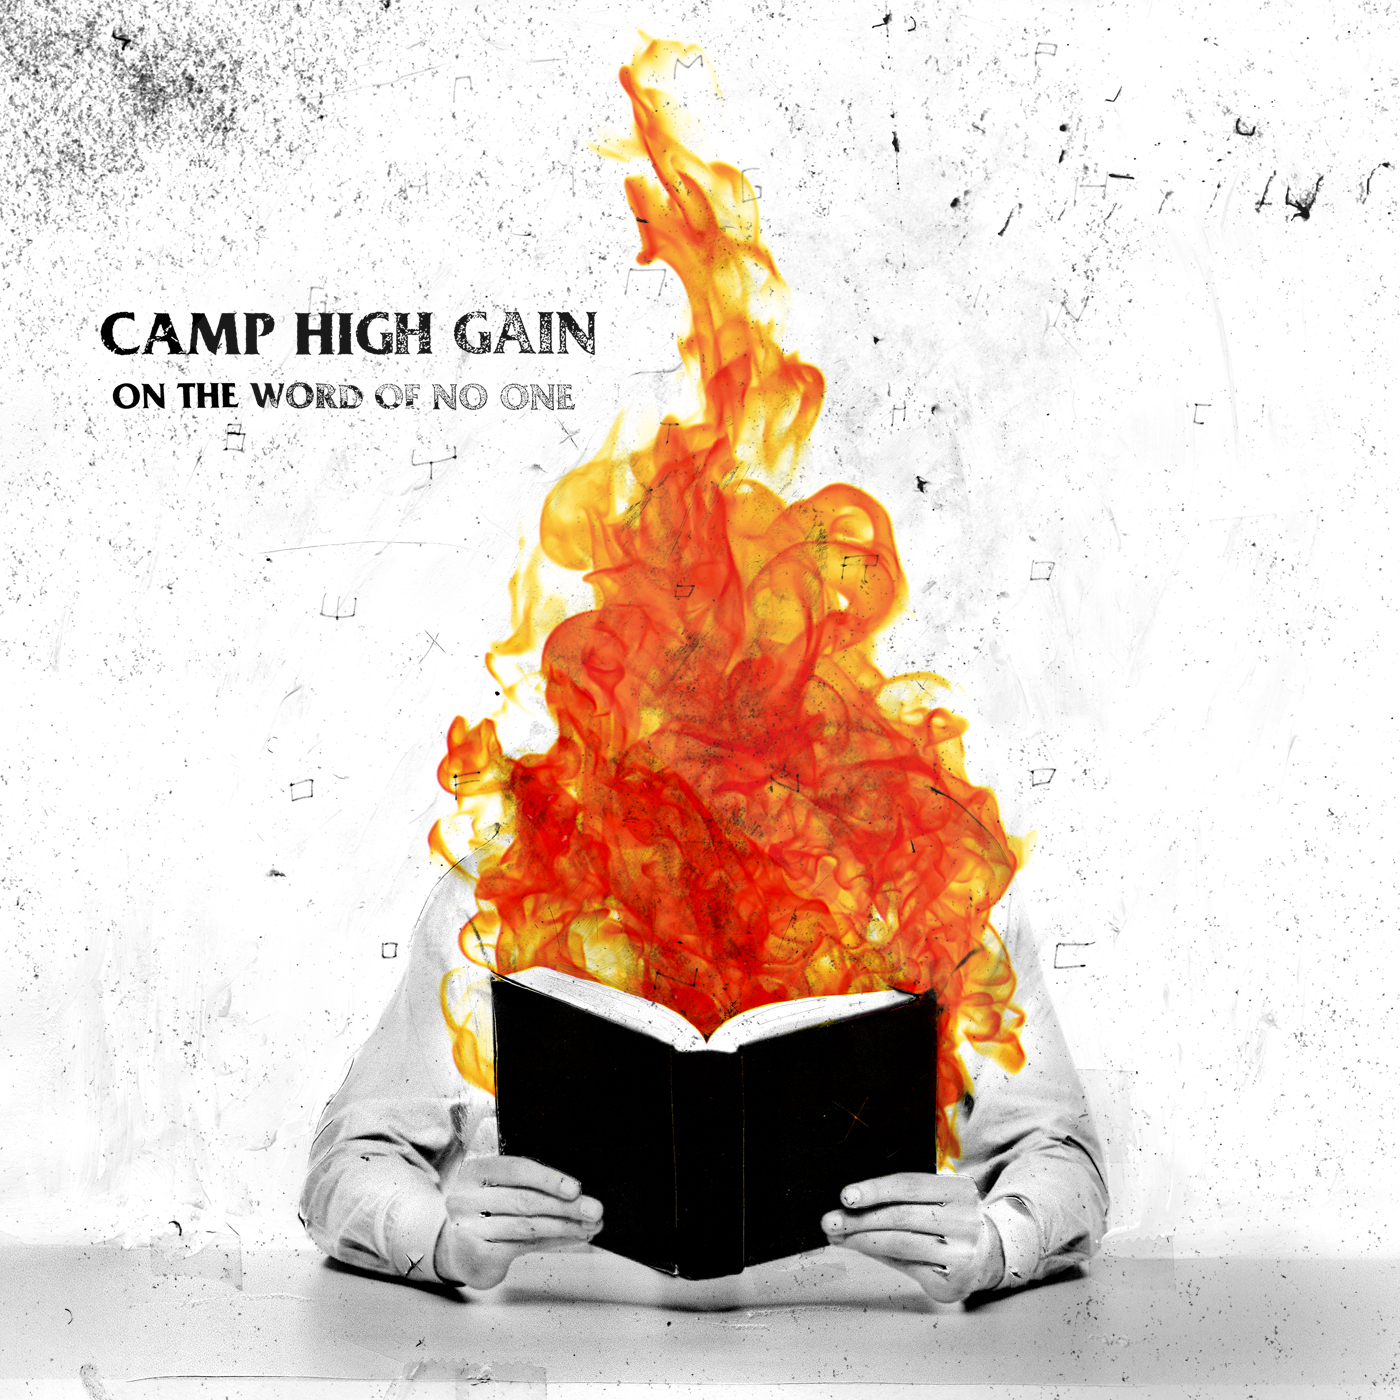 CAMP HIGH GAIN